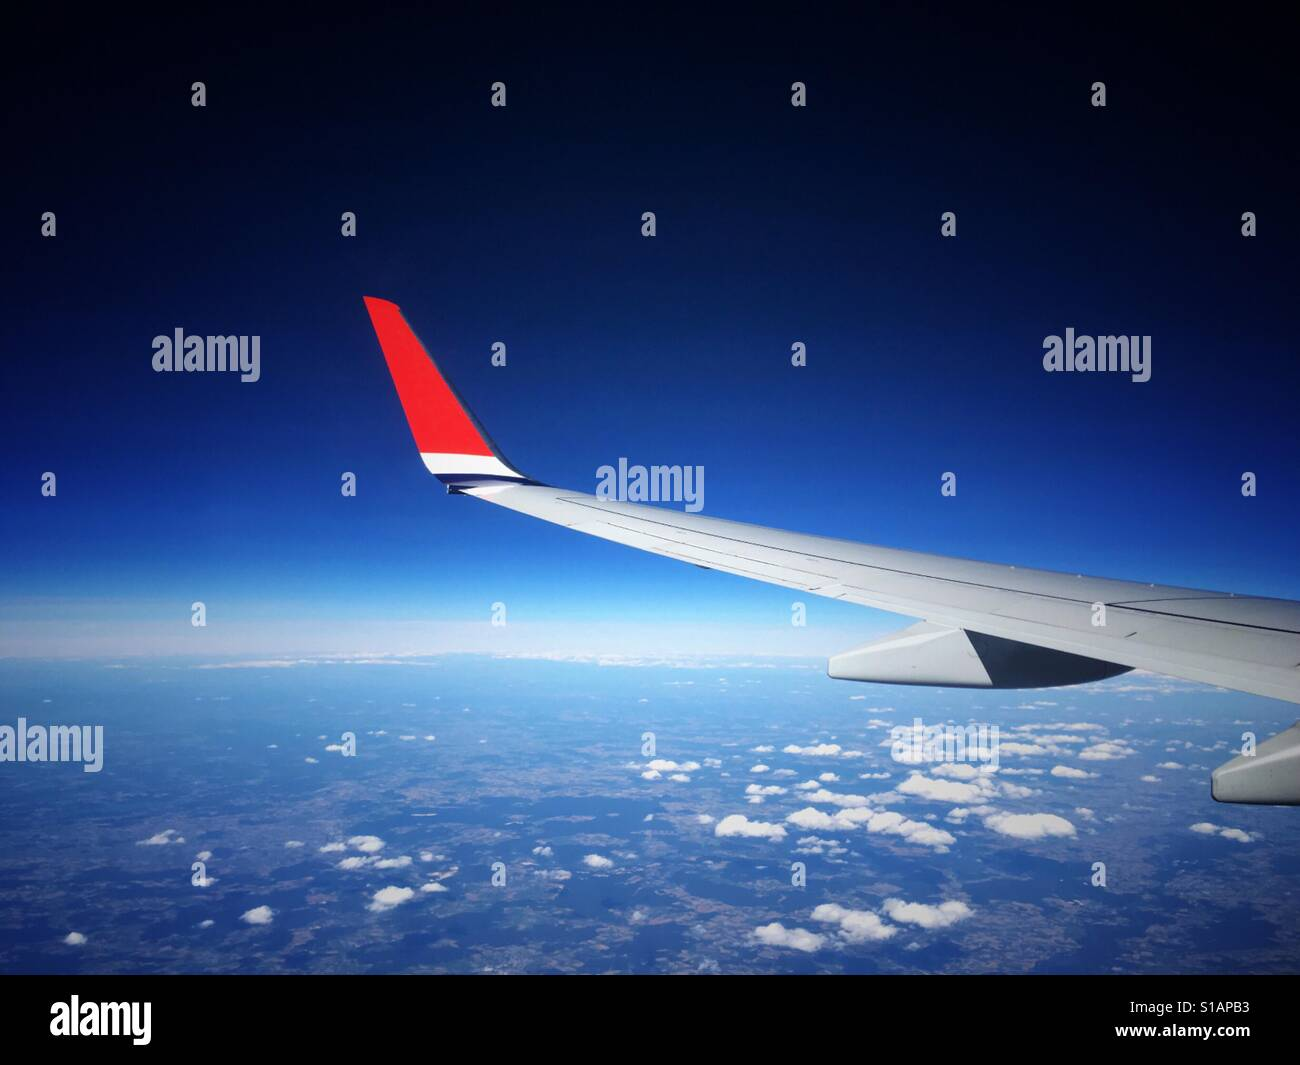 View through an aeroplane window of an airliner wing with a bright red wing tip, flying high above the clouds against - Stock Image